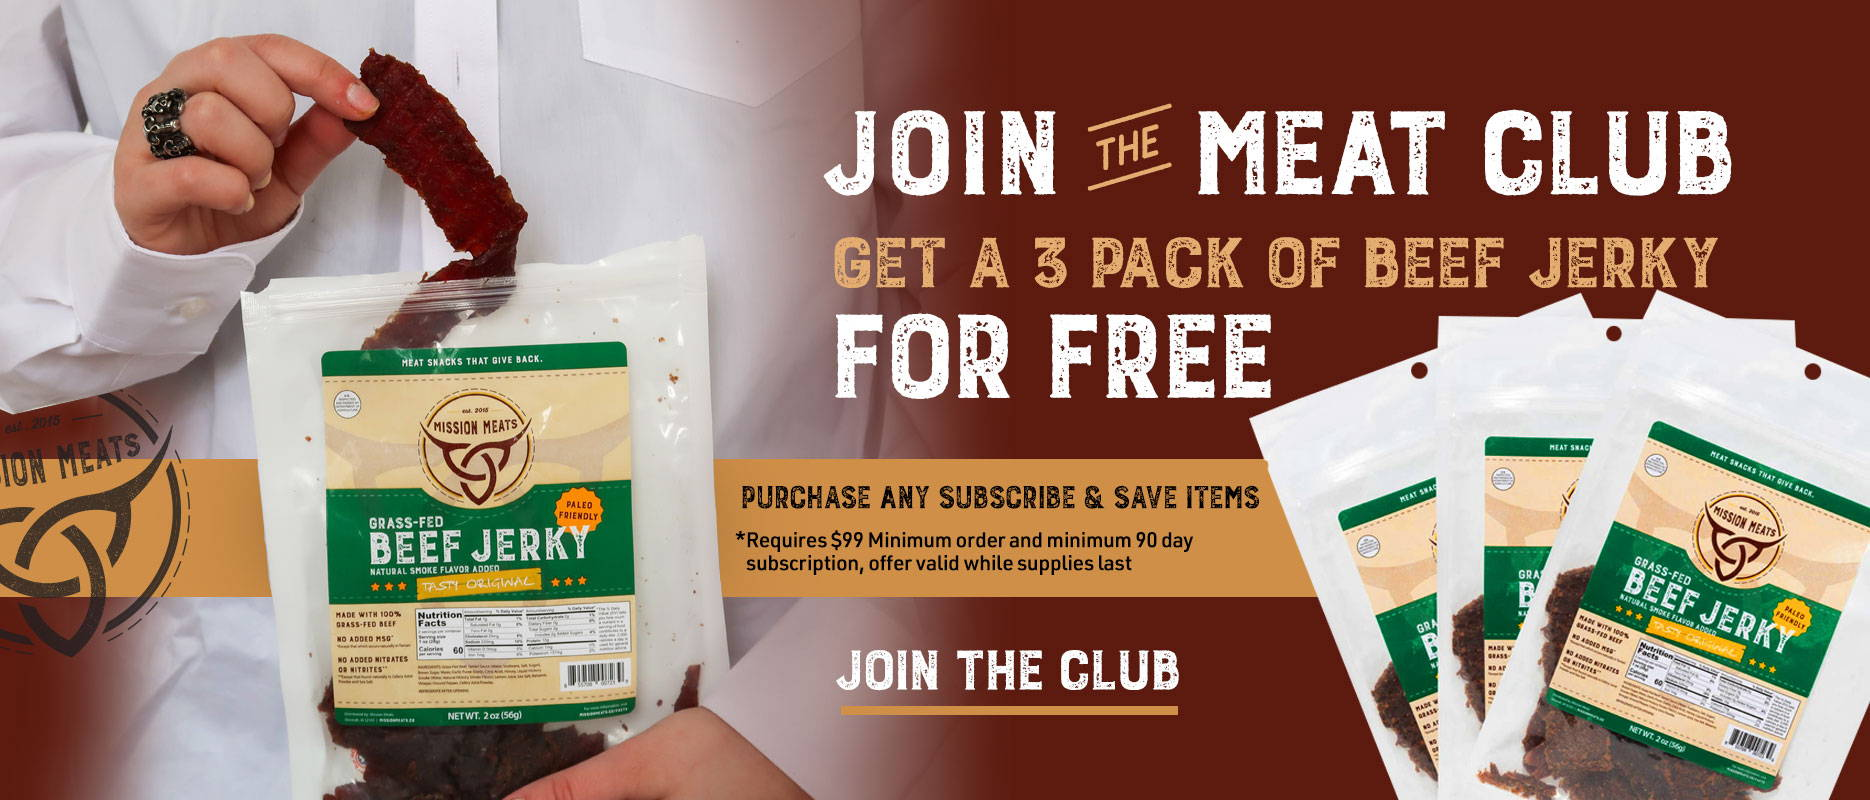 Free beef jerky join the meat club